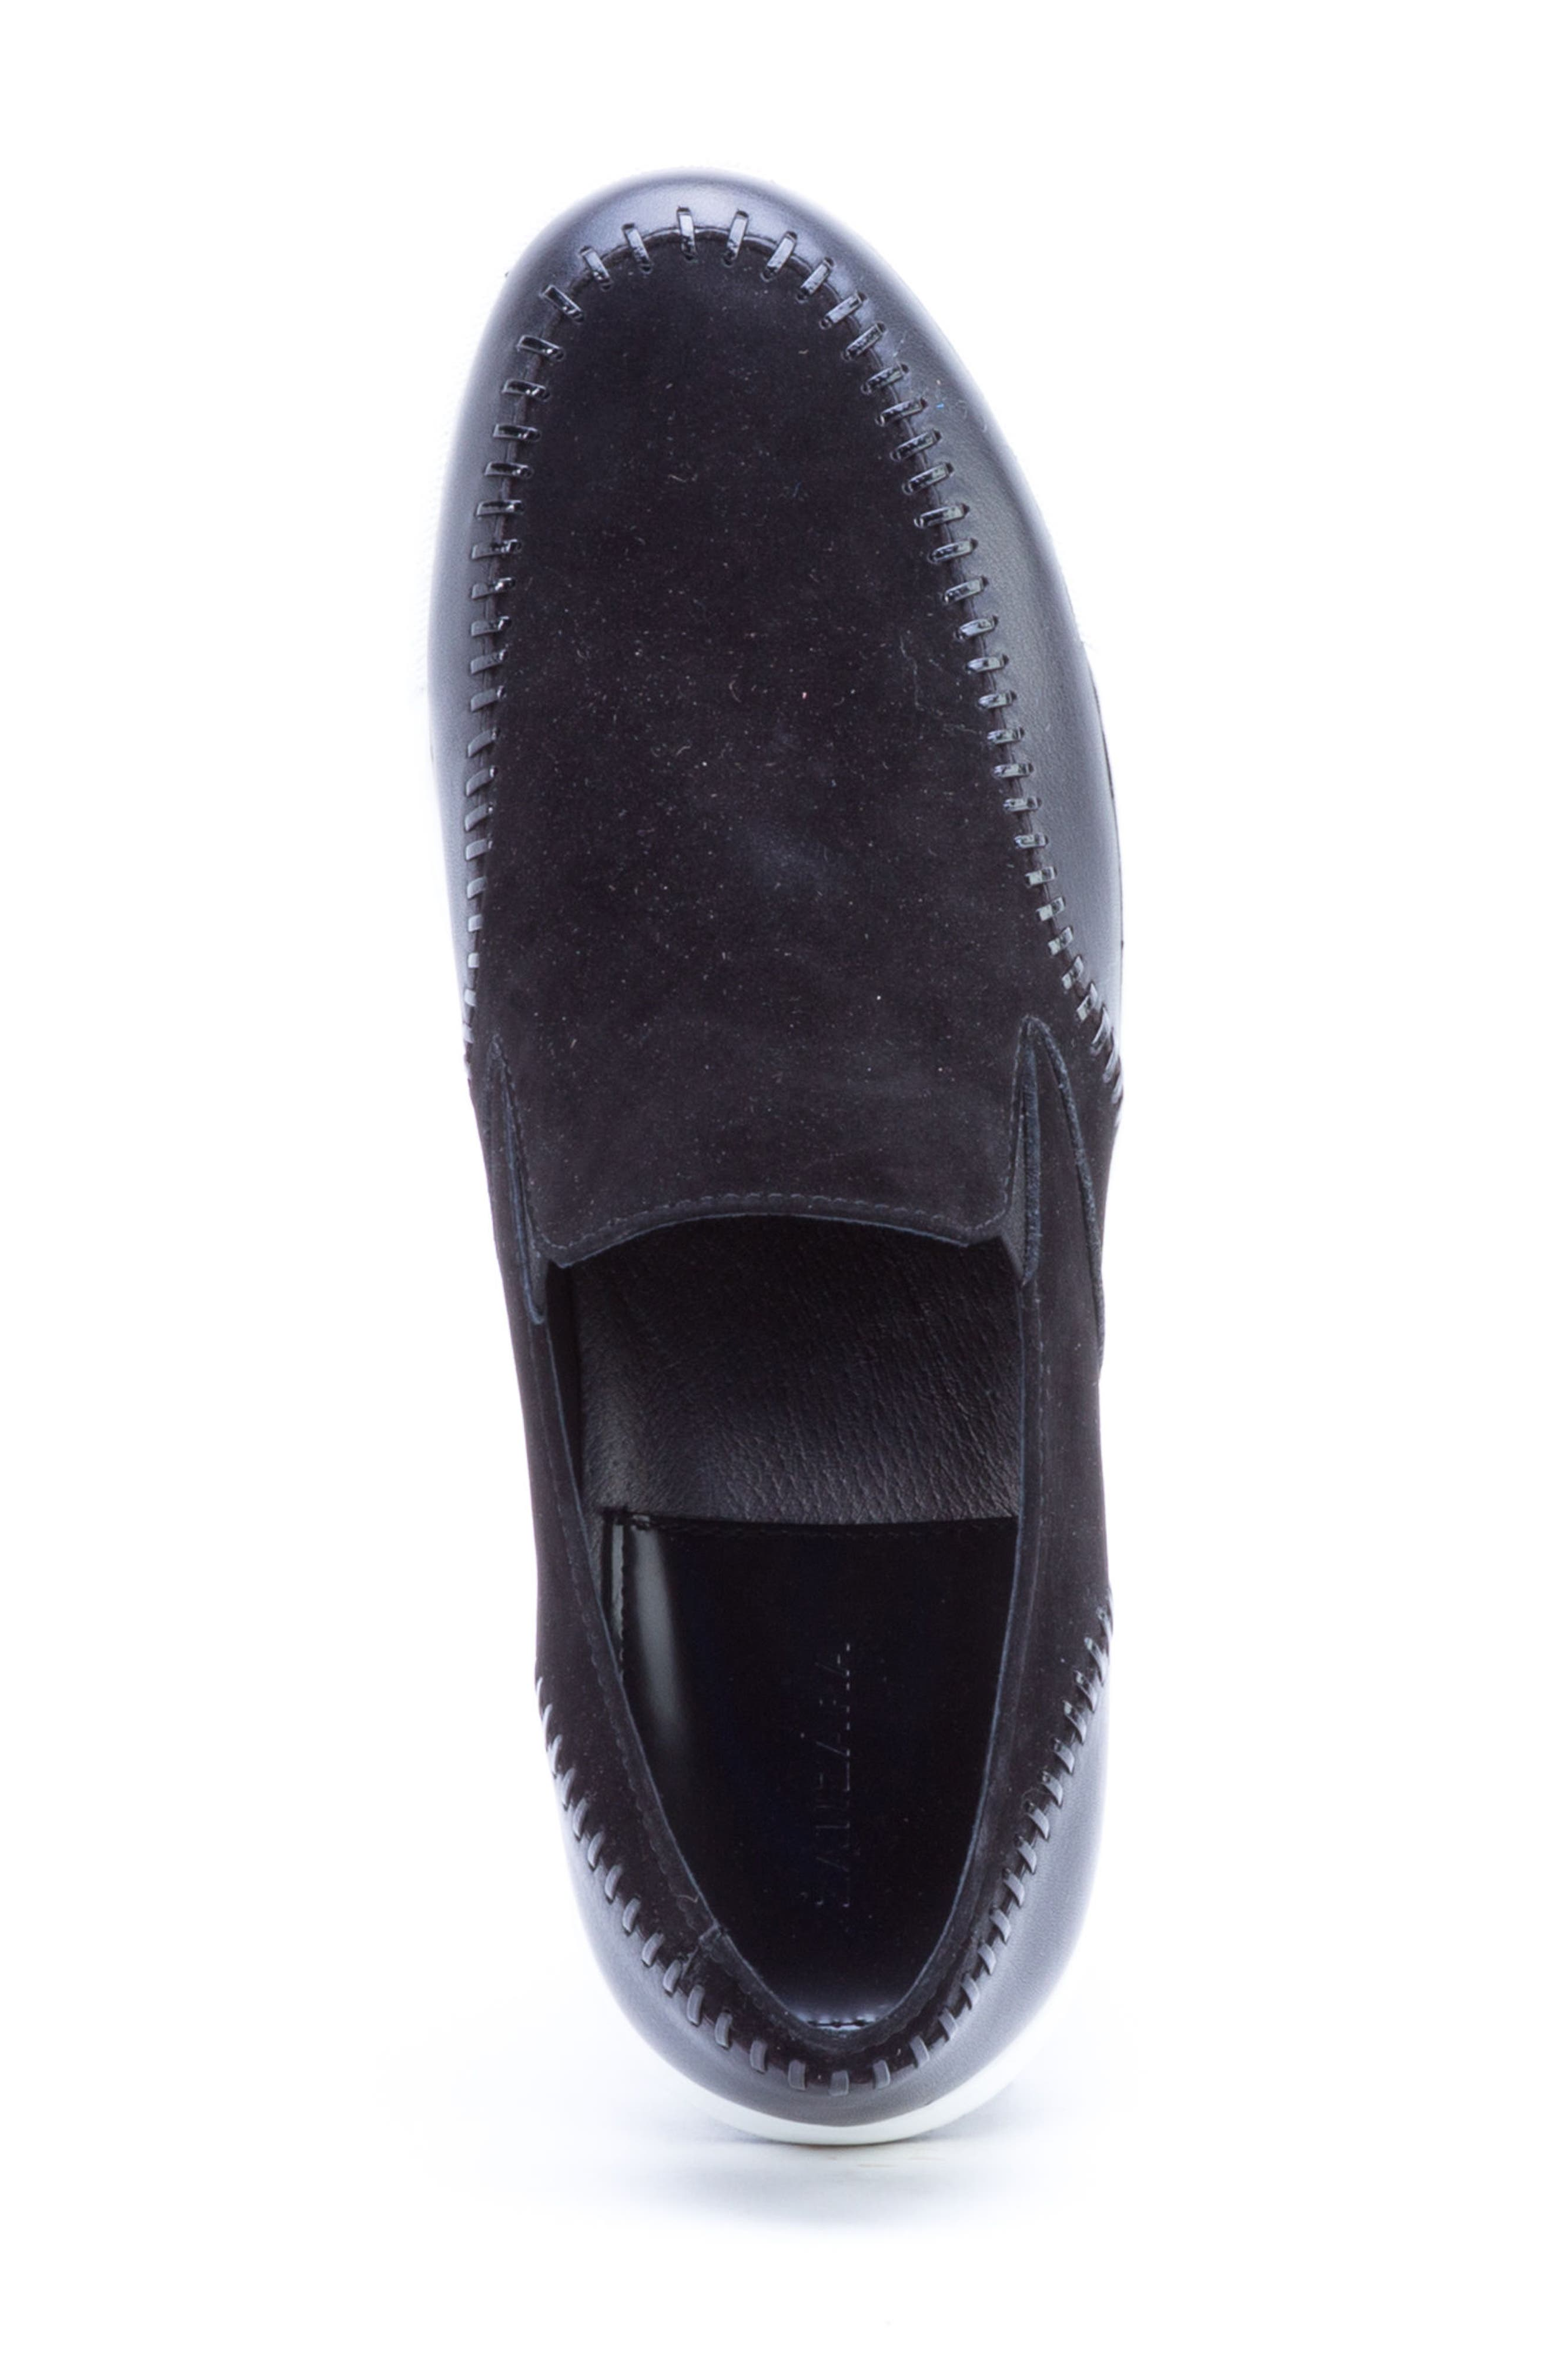 Caravaggio Whipstitched Slip-On Sneaker,                             Alternate thumbnail 5, color,                             BLACK SUEDE/ LEATHER